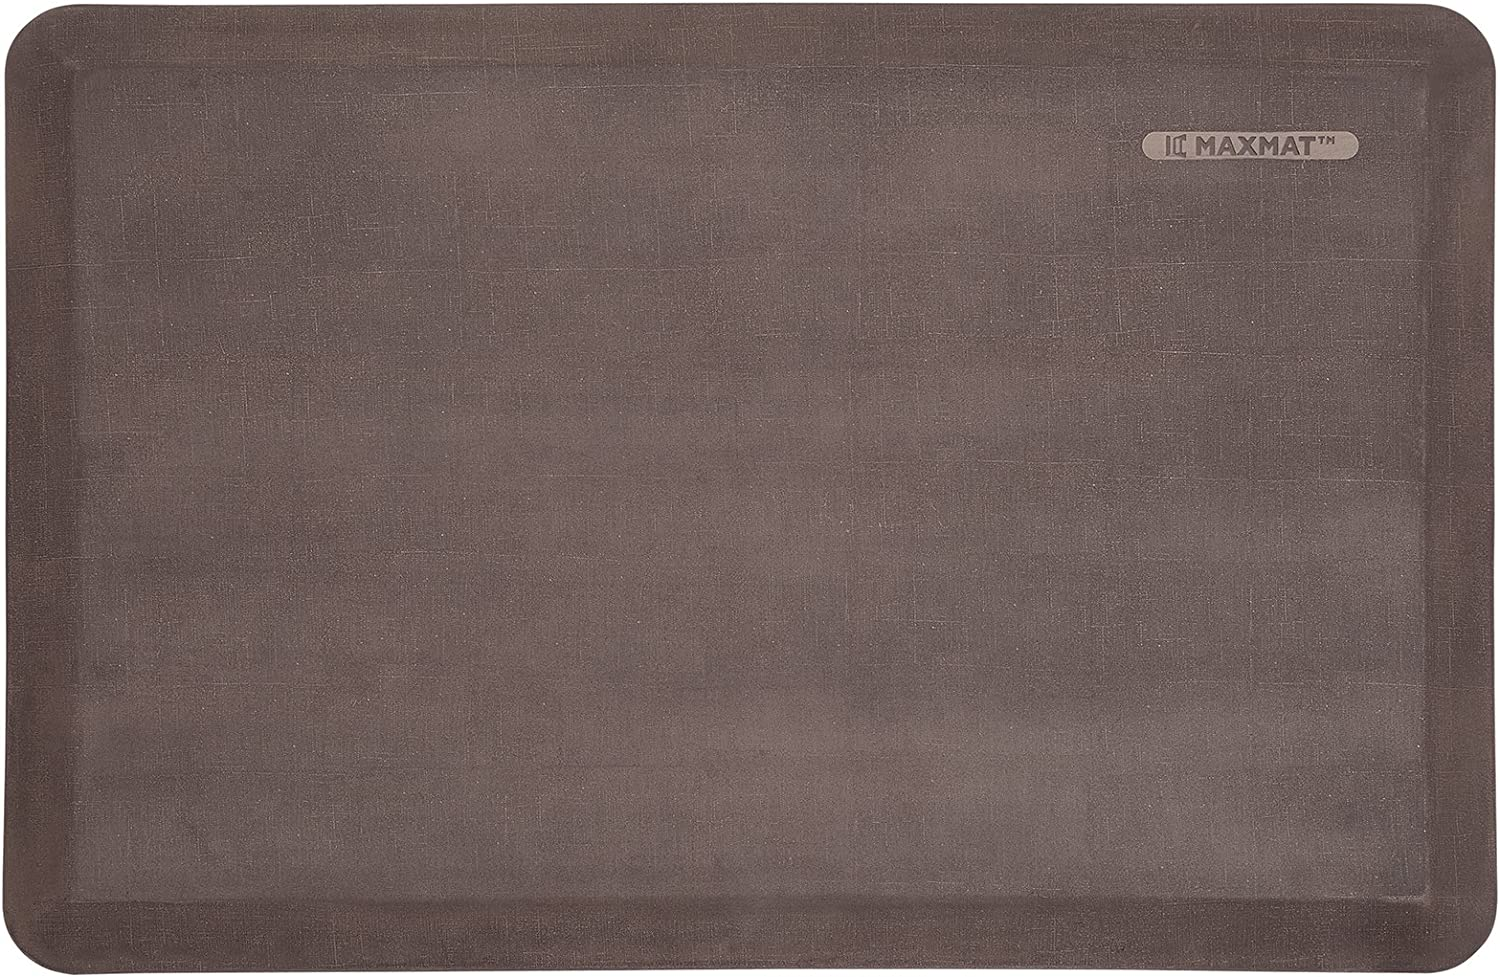 MAXMAT Comfort Mat 100% PU 24 x 36 Inches for Kitchen,Garden or Workstation-Line Pattern,Brown …